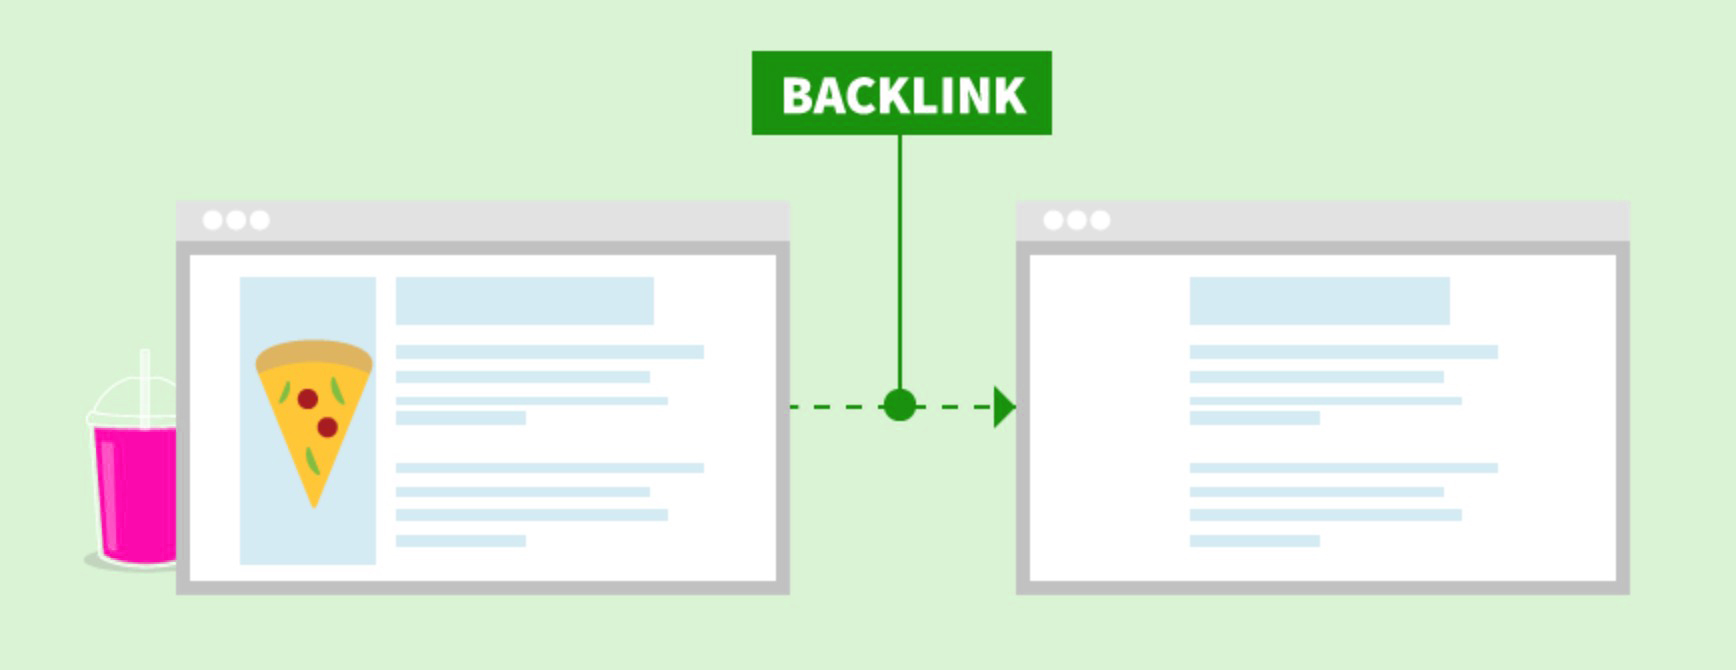 backlinks illustrations